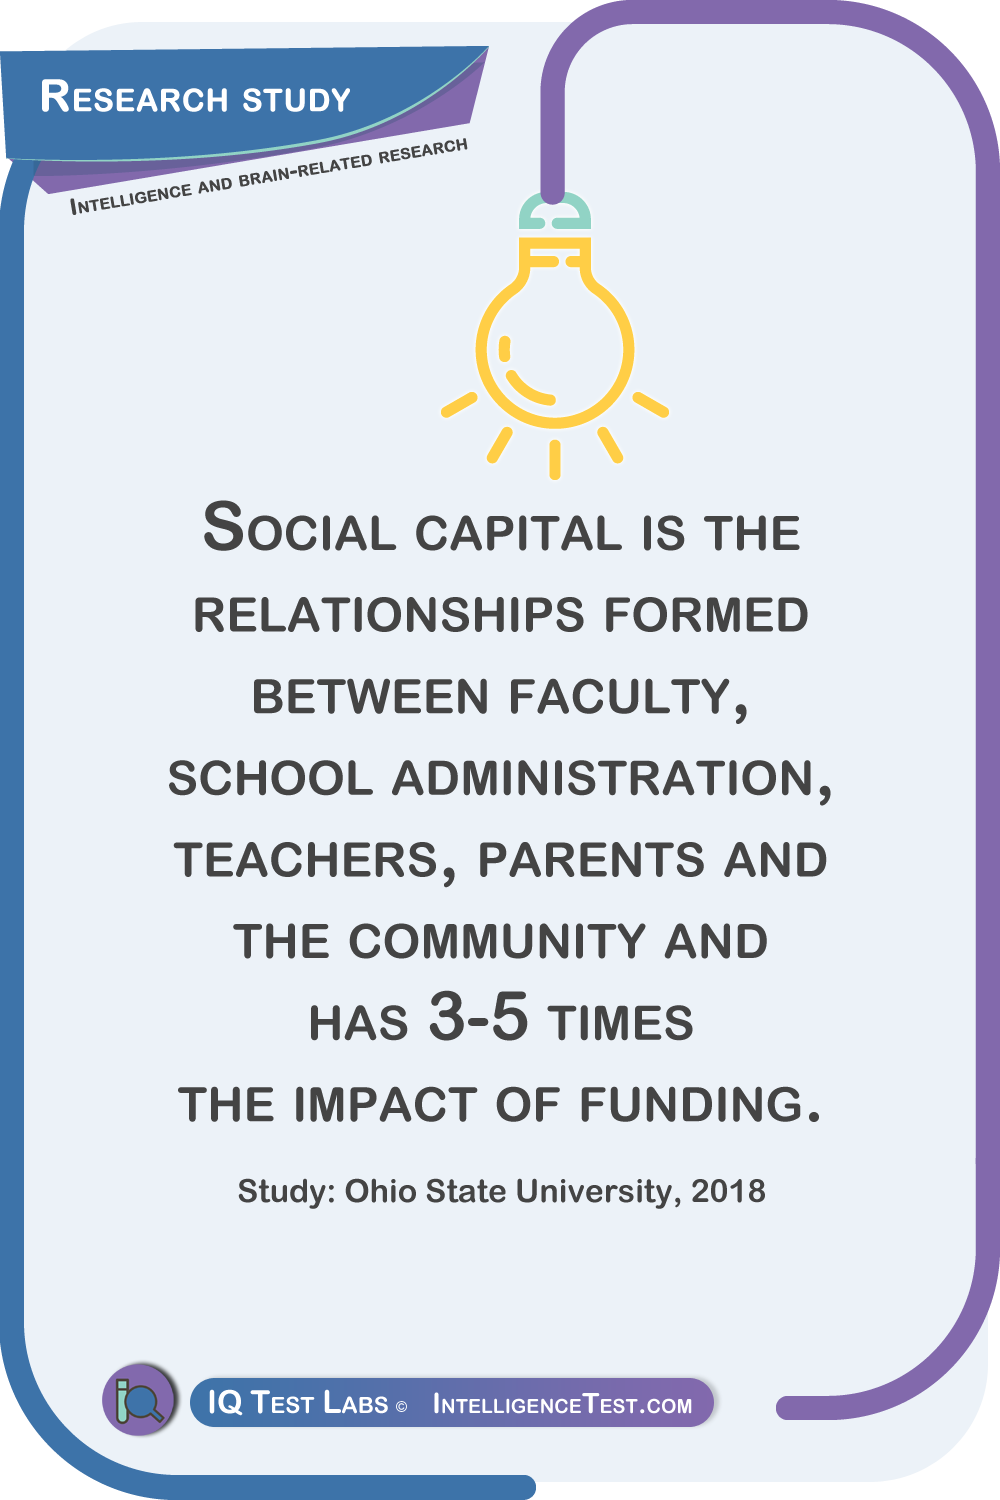 Social capital is the relationships formed between faculty, school administration, teachers, parents and the community and has 3-5 times the impact of funding. Study: Ohio State University, 2018